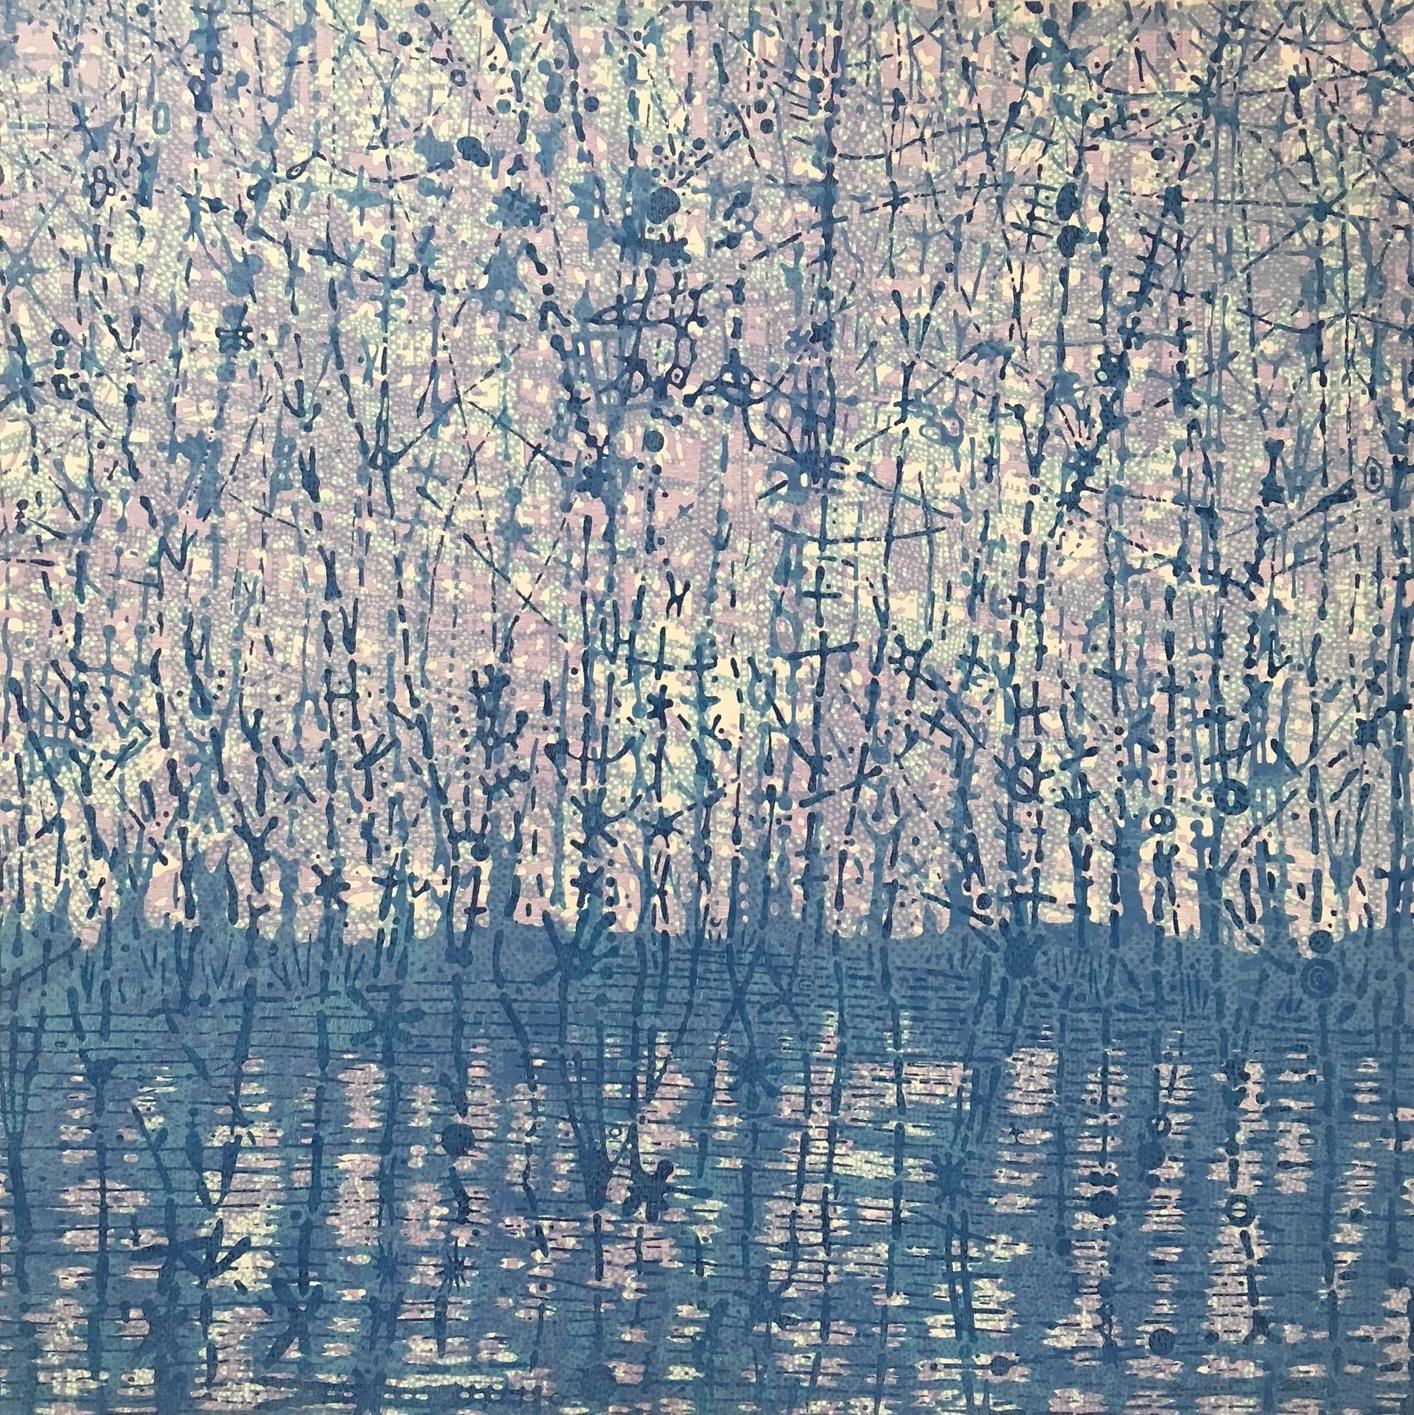 Stream Two, Woodcut Print With Forest Landscape and Water in Blue and Purple